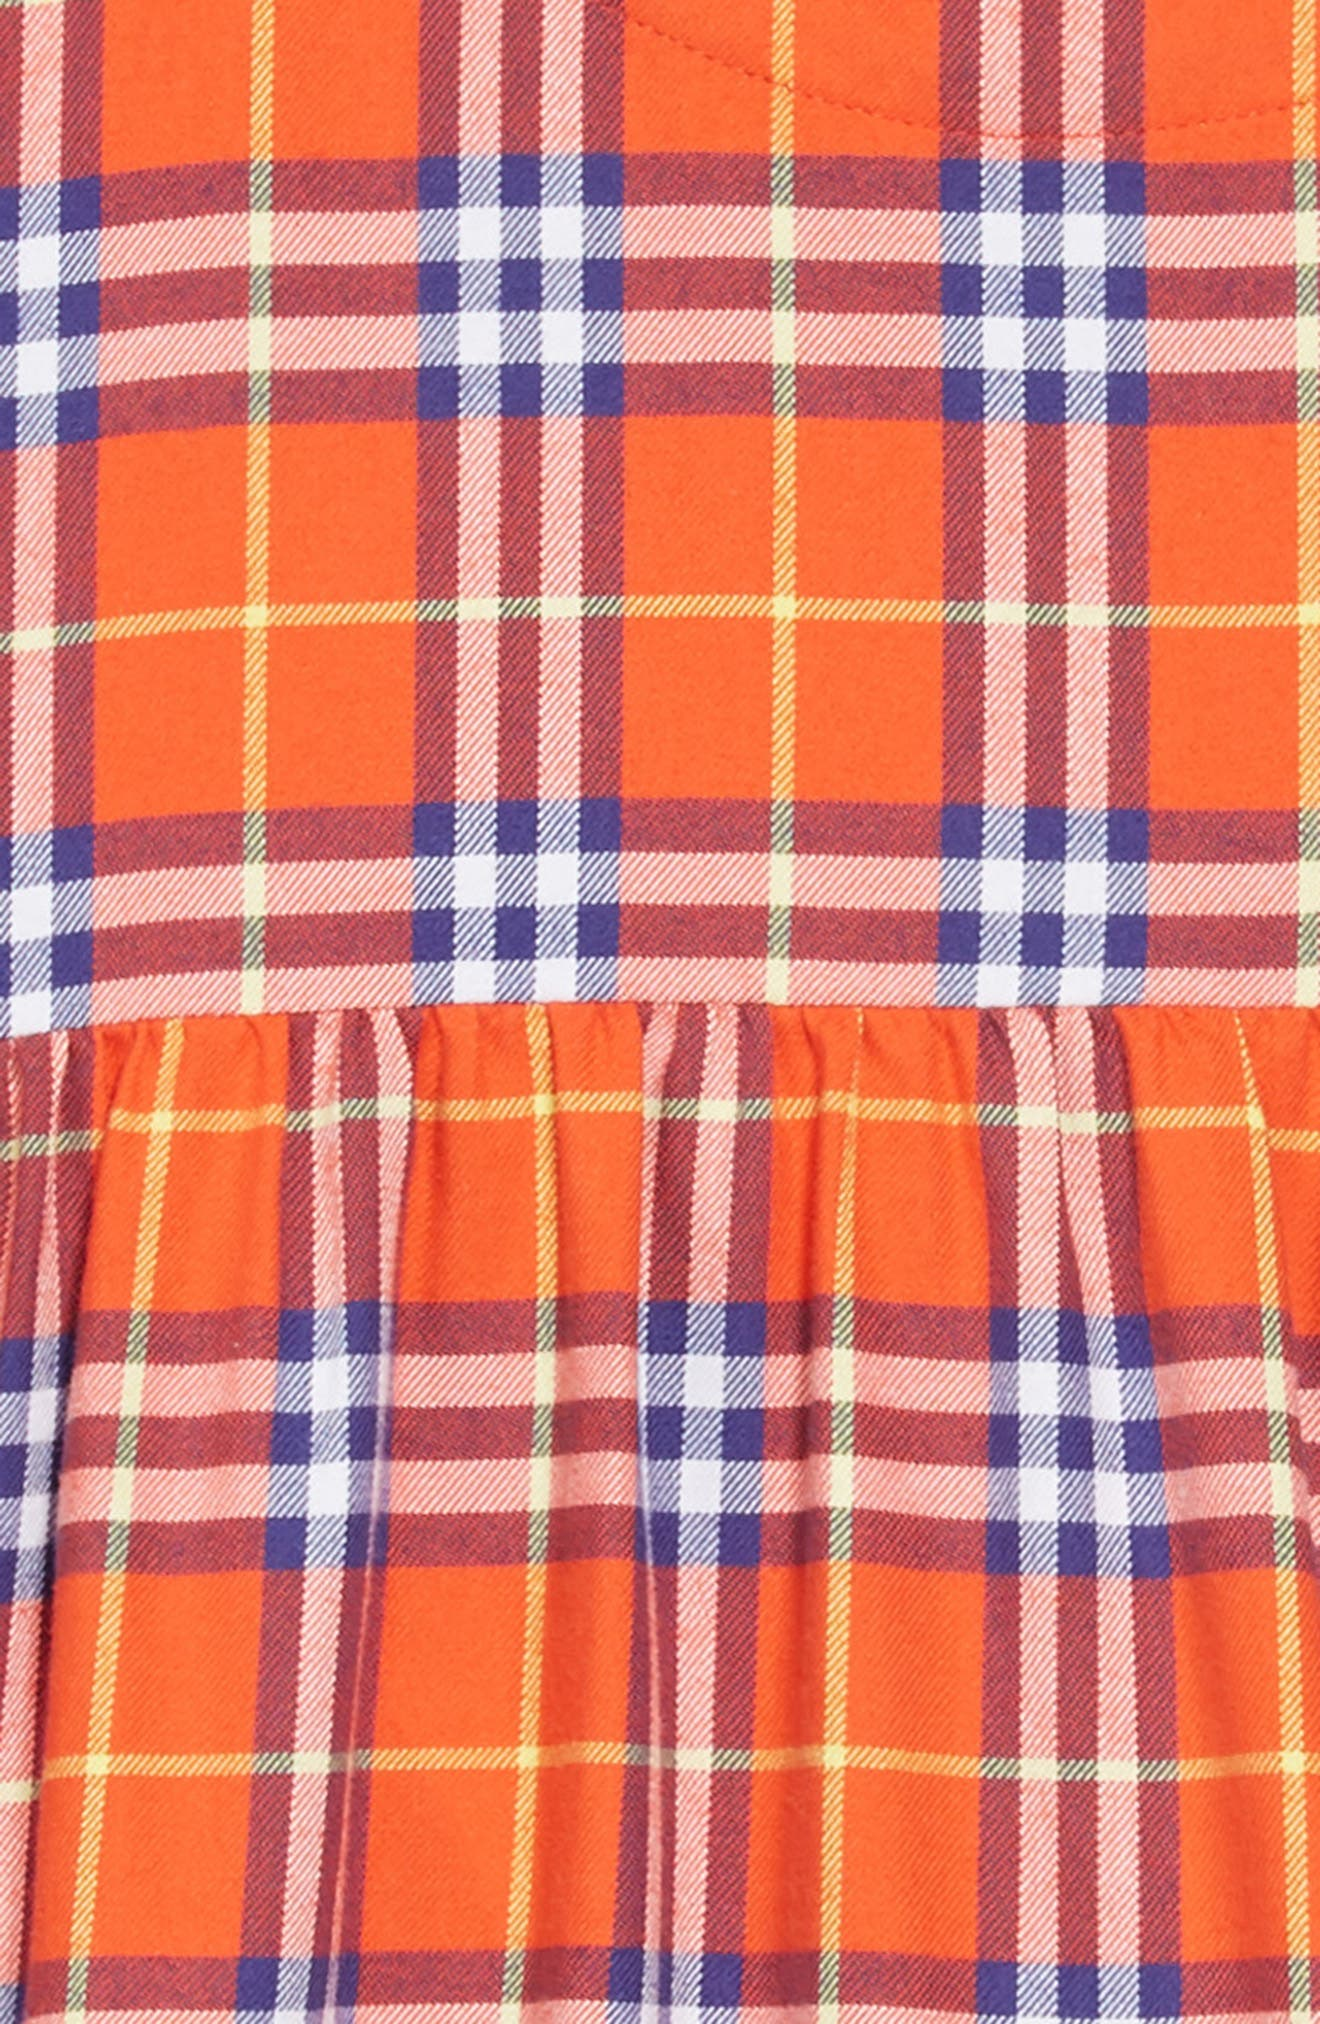 Alima Check Dress,                             Alternate thumbnail 3, color,                             ORANGE RED CHECK